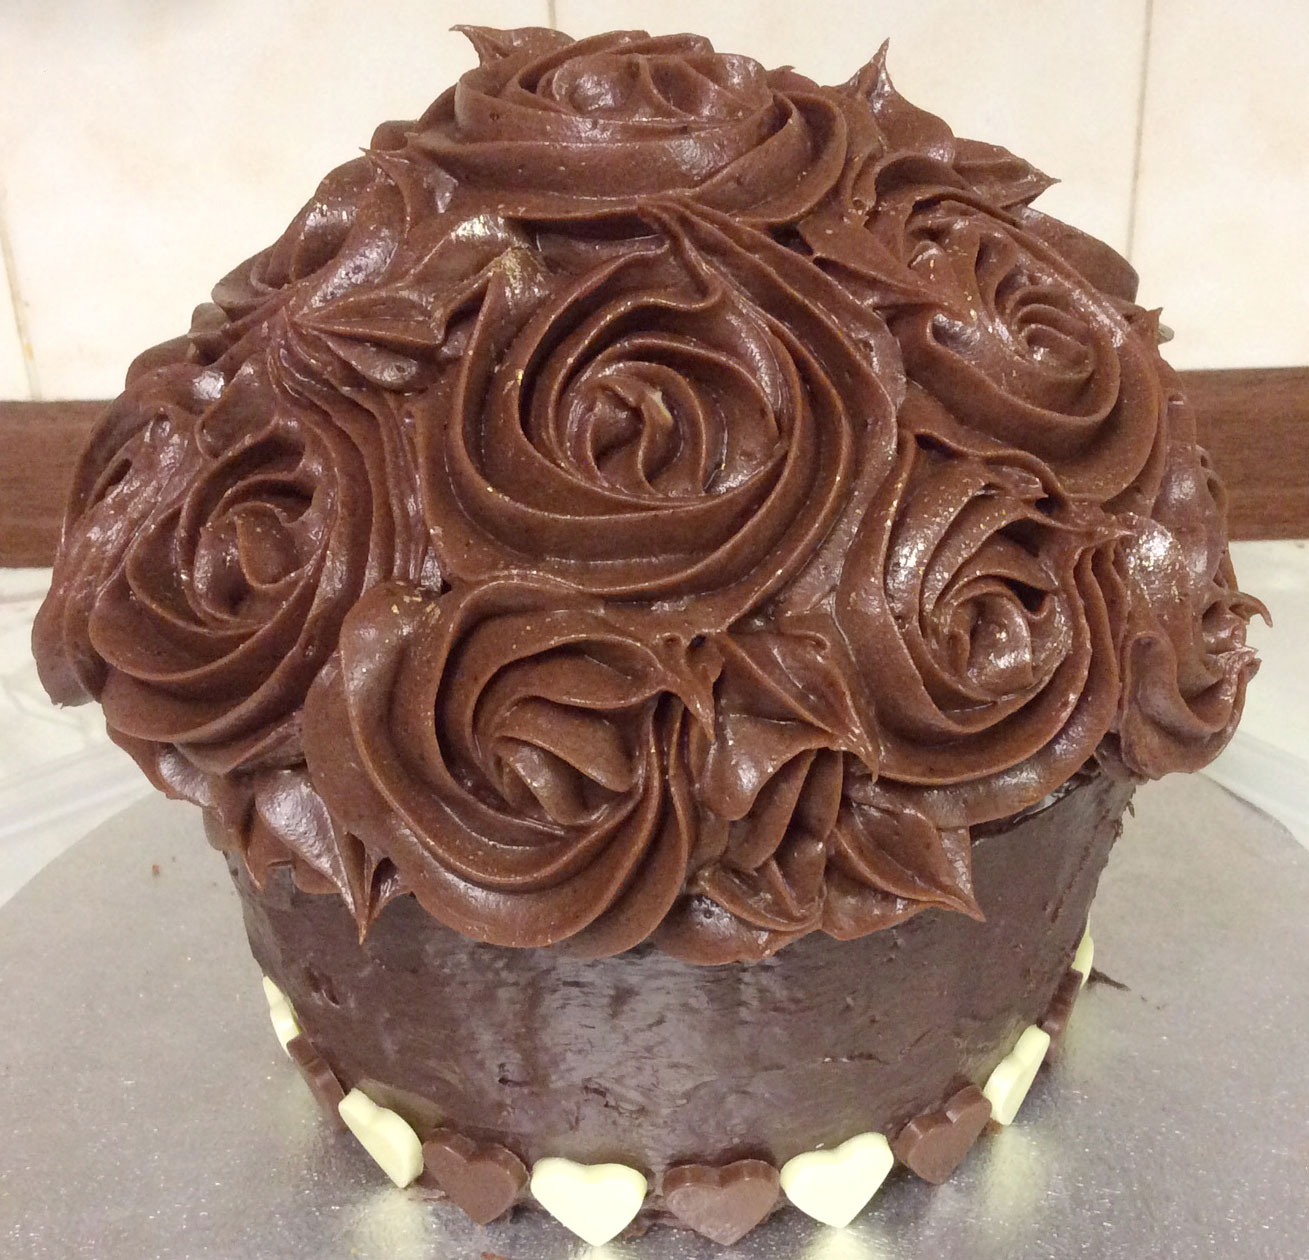 chocolate-carrot-cake-giant-cupcake-with-rose-swirls